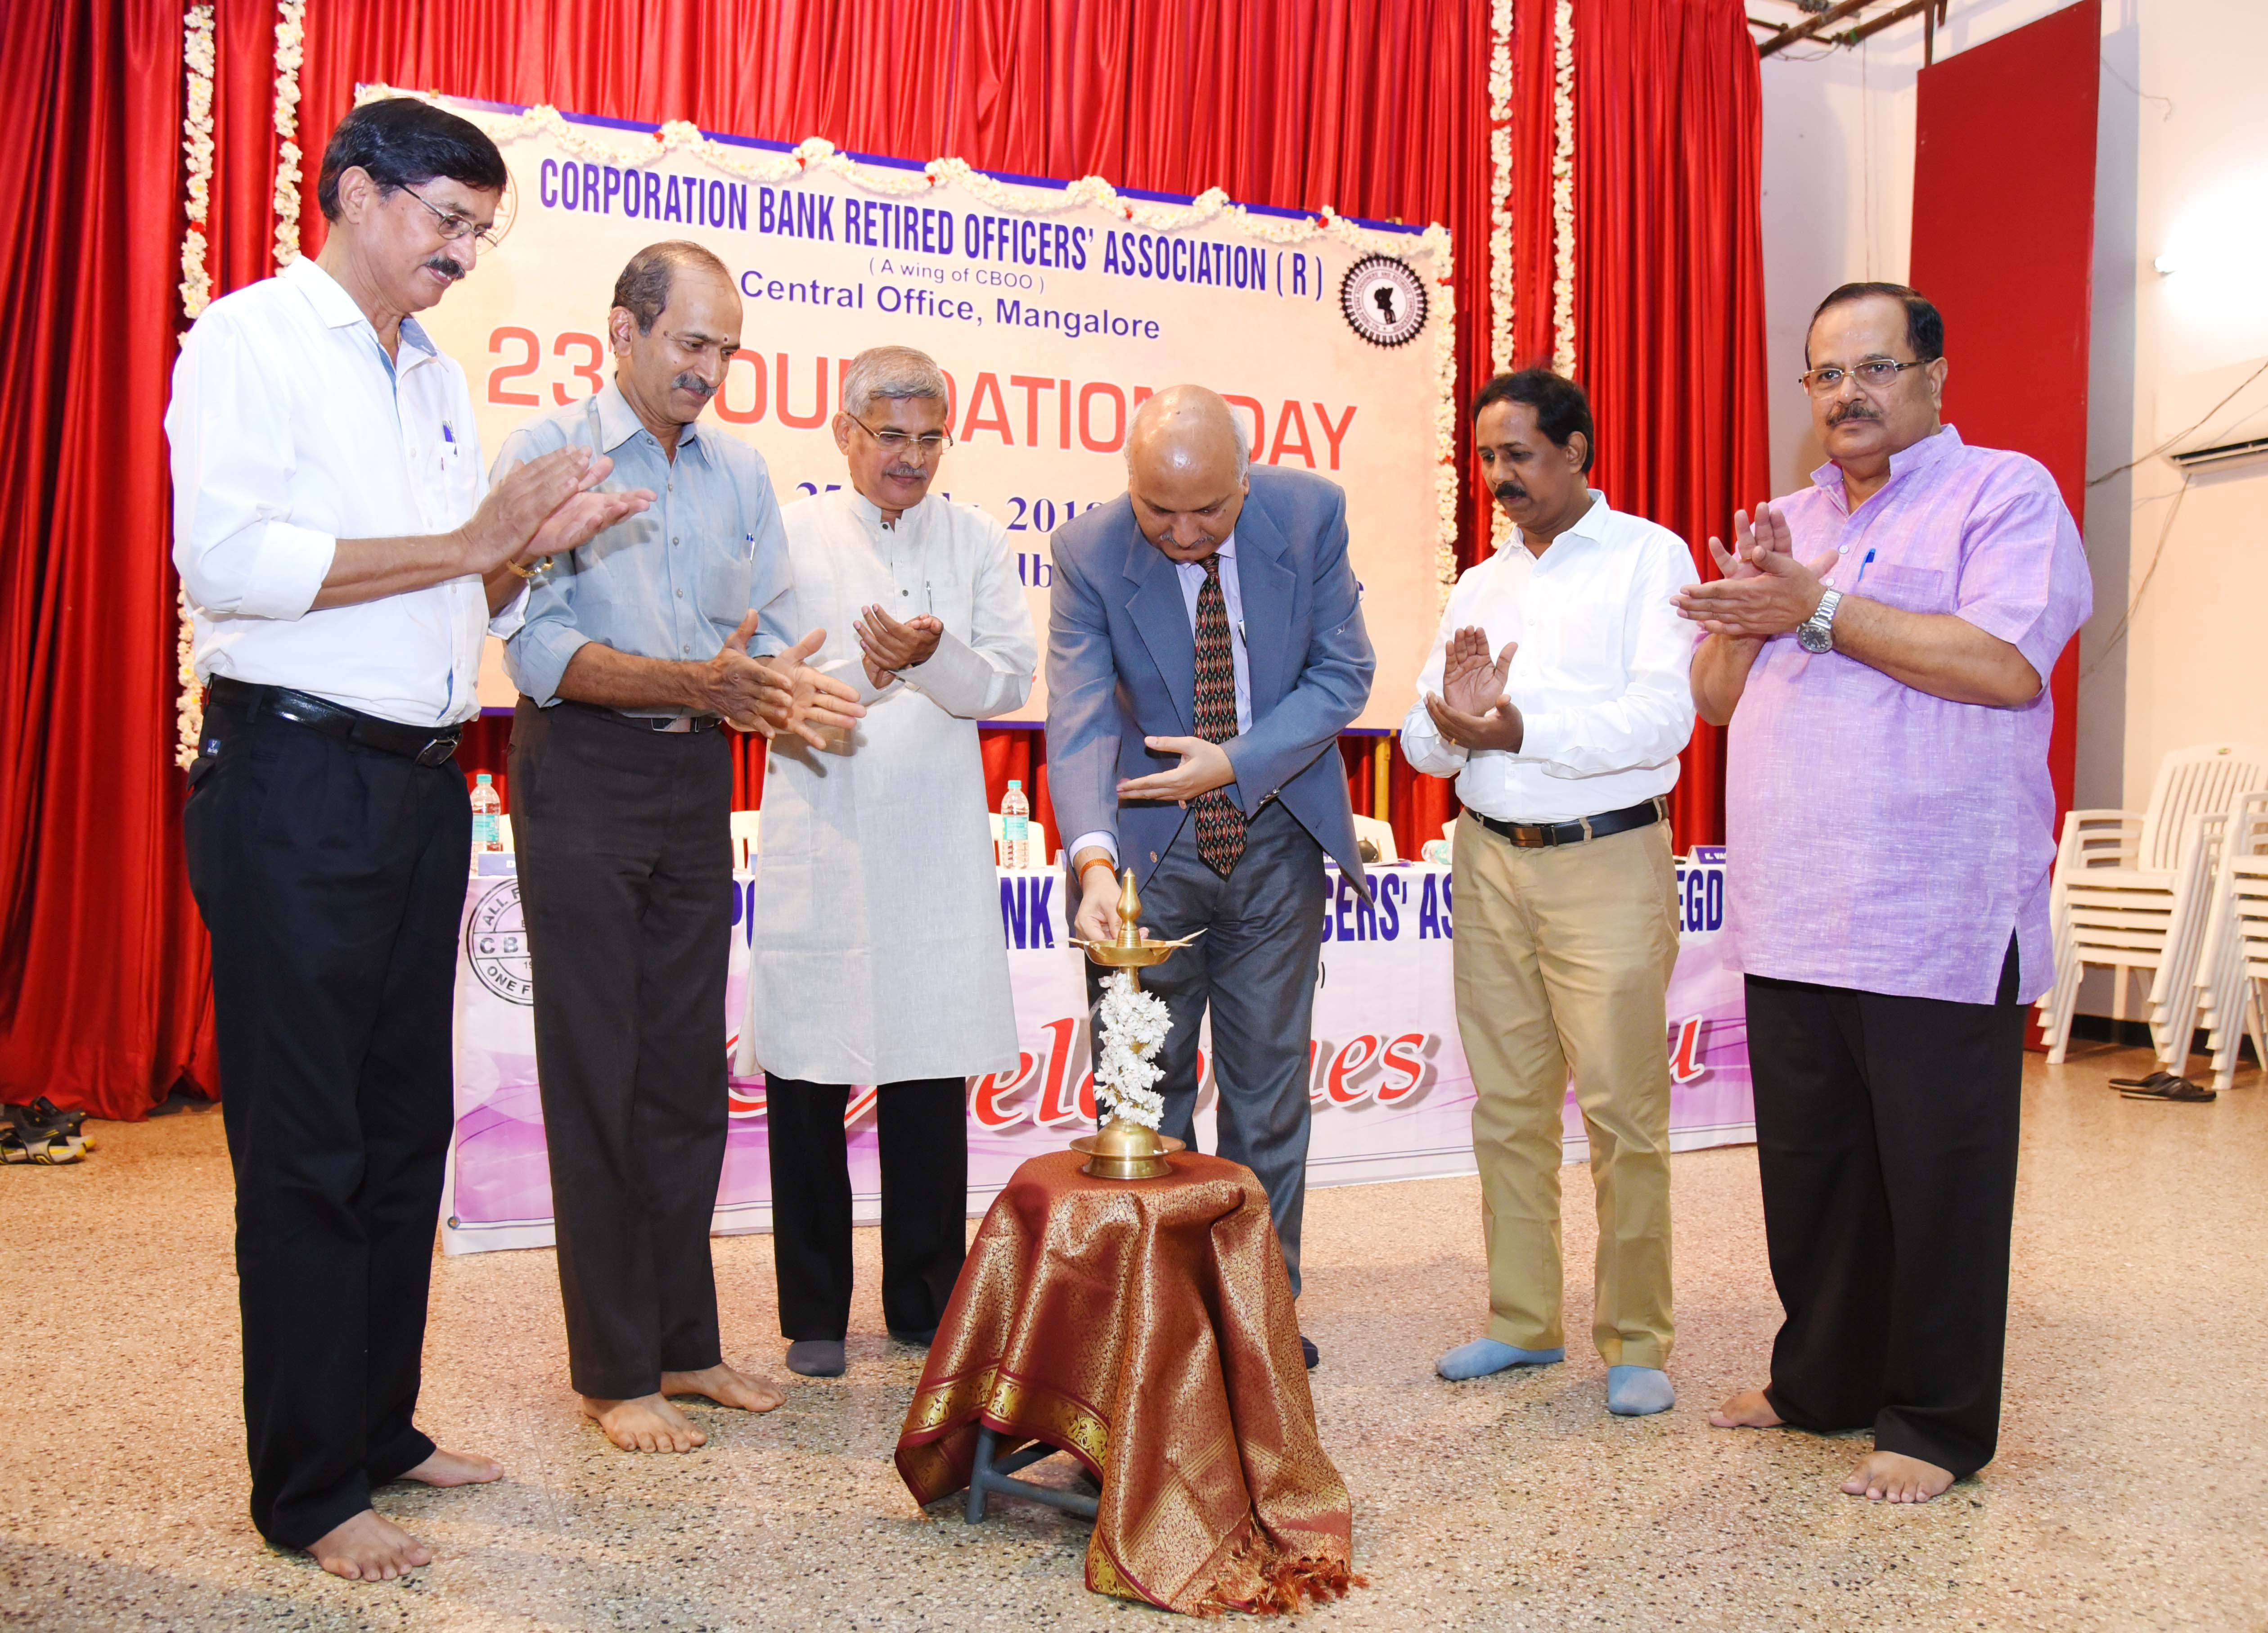 Executive Director, Sri Gopal Murli Bhagat inaugurating the celebrations by lighting the lamp.